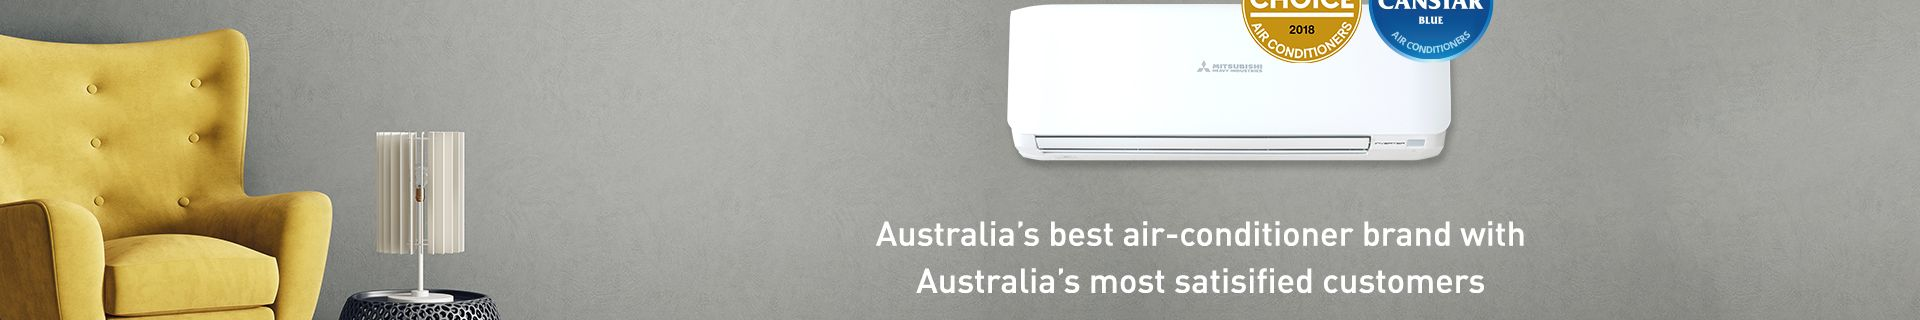 Lounge room with air conditioner and yellow couch. Australia's best air conditioner brand with Australia's most satisified customers.